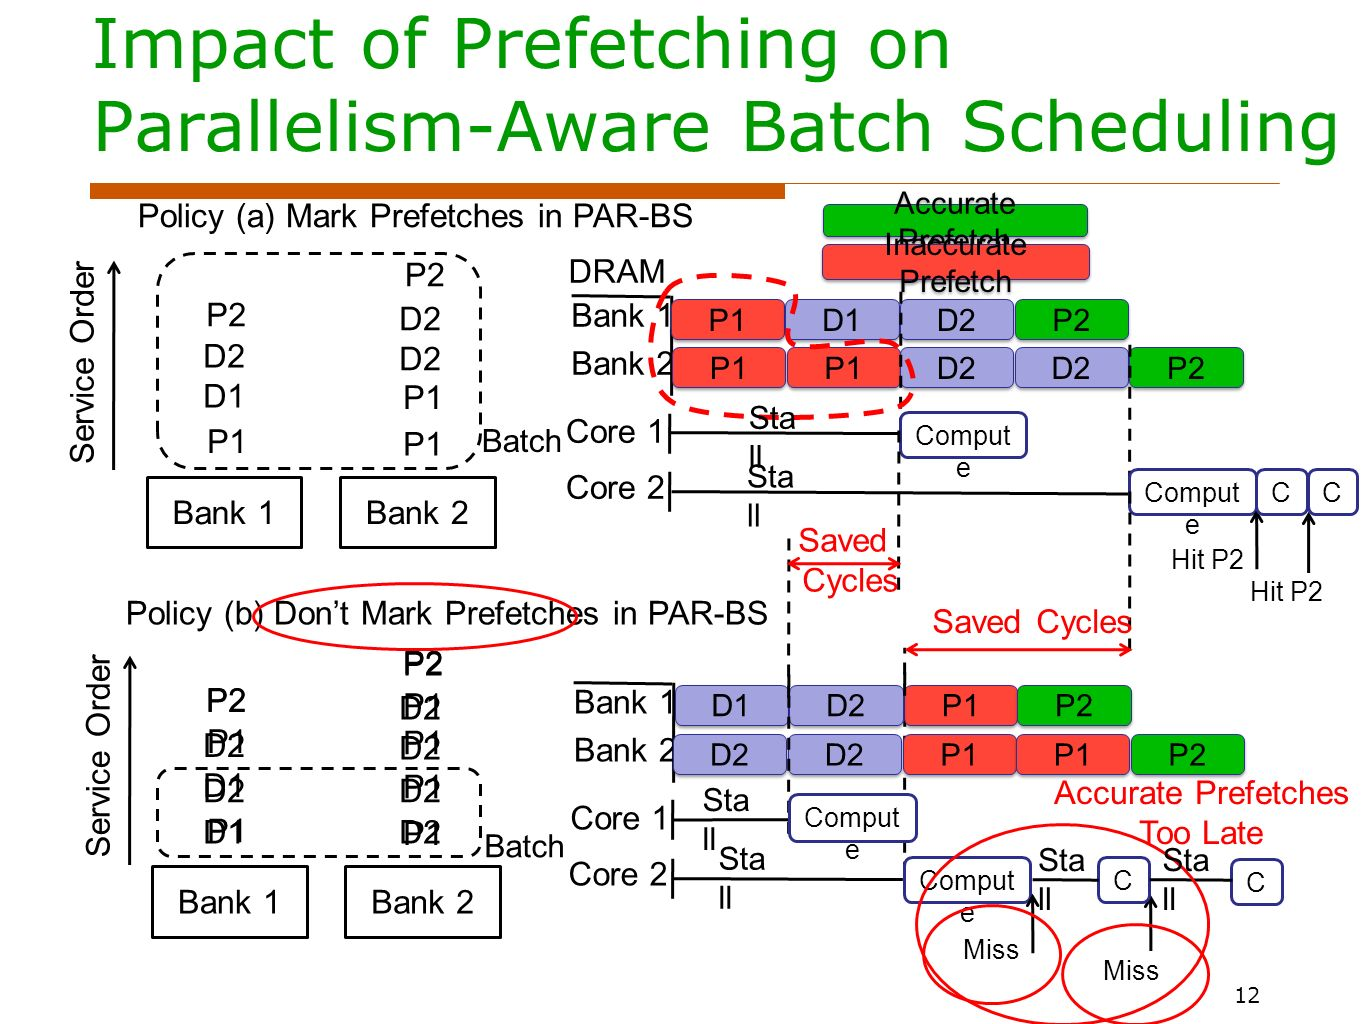 Impact of Prefetching on Parallelism-Aware Batch Scheduling 12 Bank 1Bank 2 Bank 1Bank 2 Policy (a) Mark Prefetches in PAR-BS Policy (b) Dont Mark Prefetches in PAR-BS P1 D1 D2 P2 P1 D2 P2 Service Order P1 D1 D2 P2 P1 D2 P2 DRAM Bank 1 Bank 2 Core 1 Core 2 P1 D1 D2 P2 P1 D2 P2 Comput e Hit P2 Service Order Bank 1 Bank 2 Core 1 Core 2 P1 D1 D2 P2 P1 D2 P2 Comput e Miss P1 D1 D2 P2 P1 D2 P2 Saved Cycles Saved Cycles Accurate Prefetch Inaccurate Prefetch Accurate Prefetches Too Late Sta ll CC C C Batch